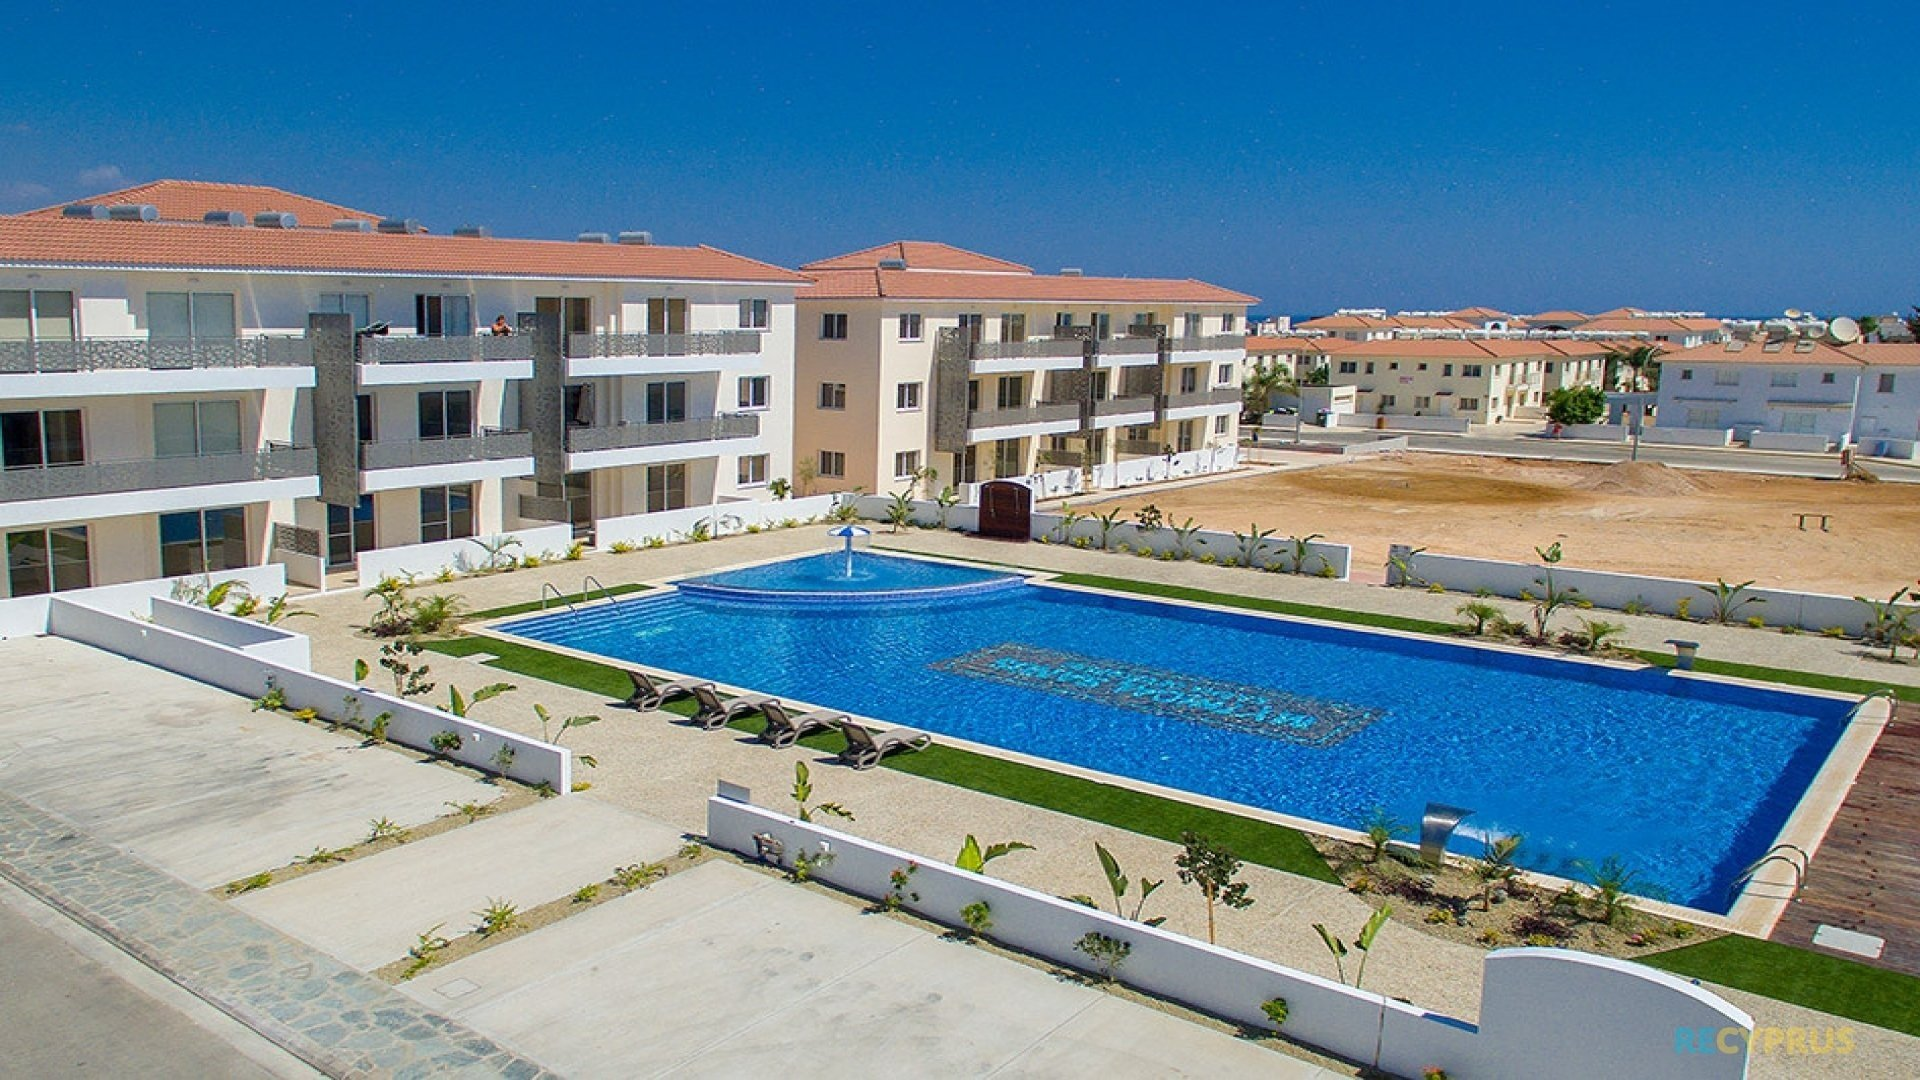 Apartment for sale Kapparis Famagusta Cyprus 11 3443